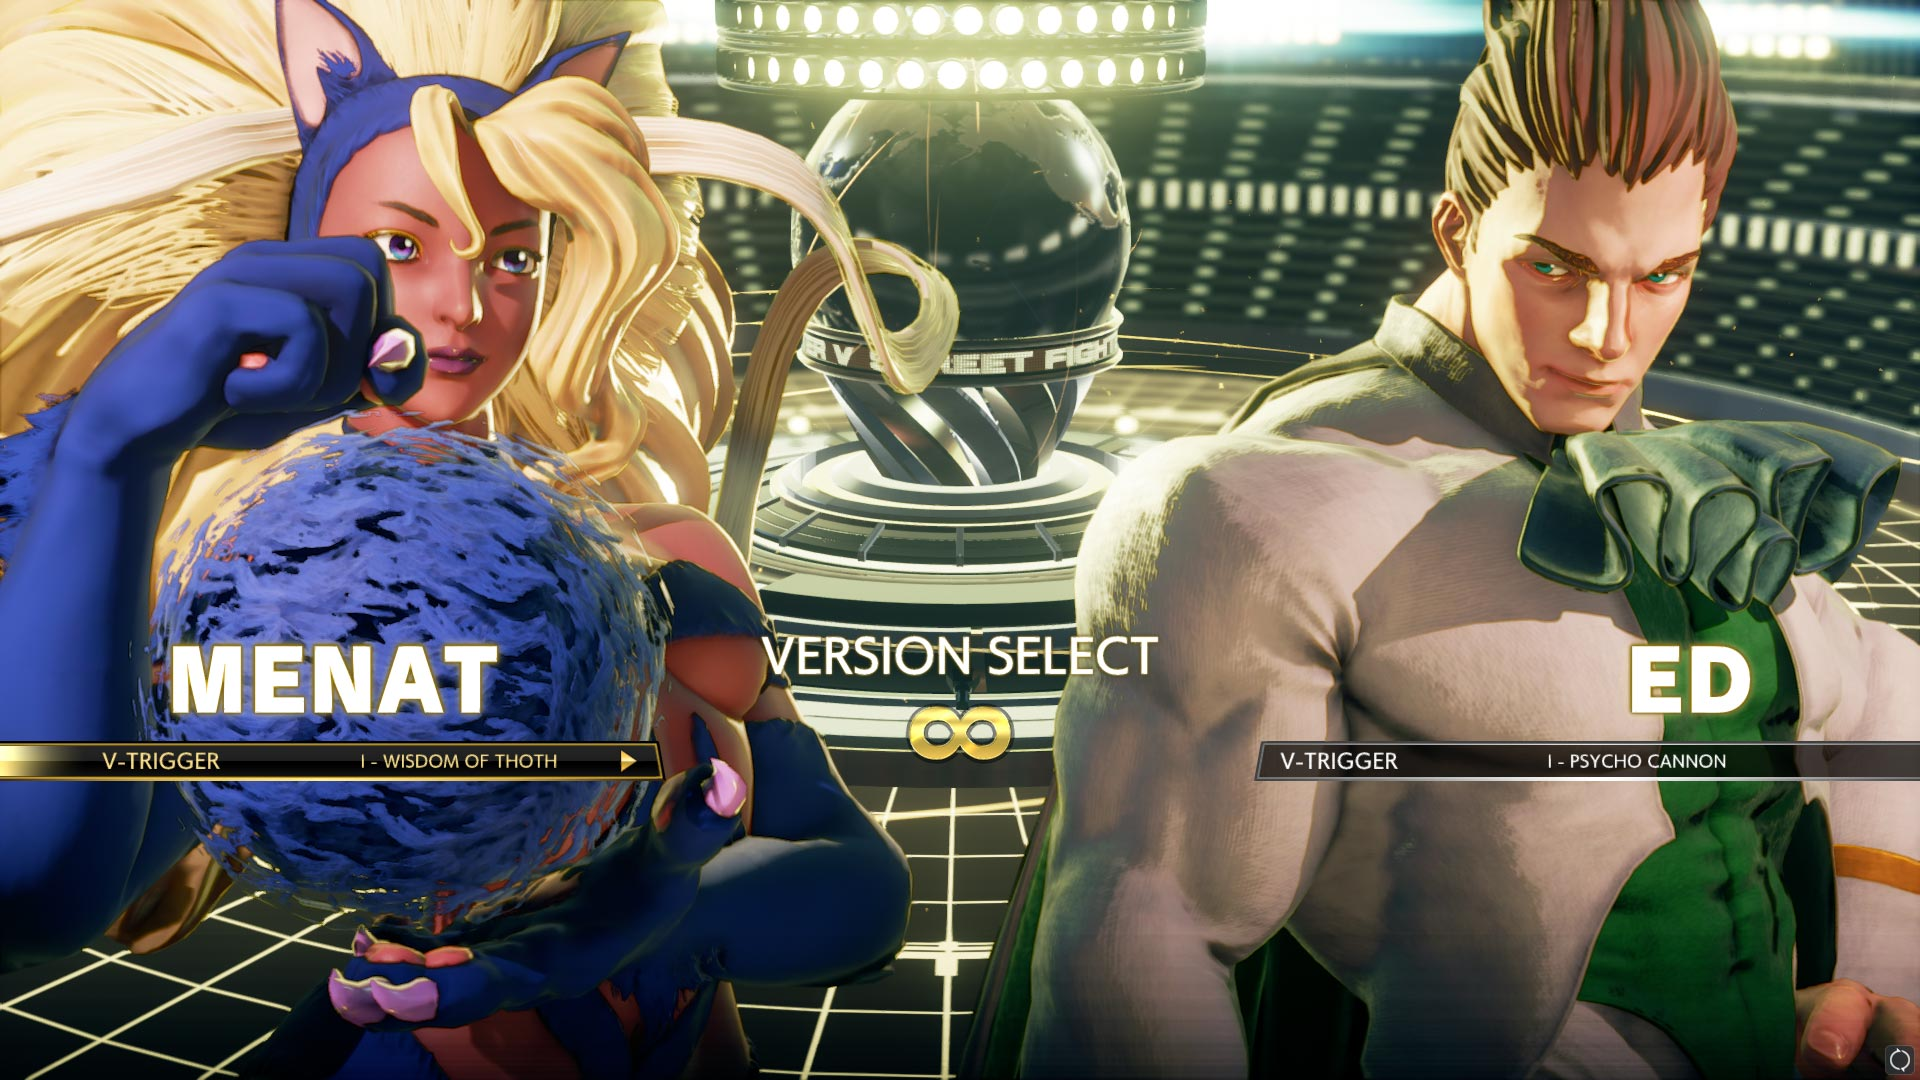 New Darkstalkers costumes in Street Fighter 5 16 out of 17 image gallery